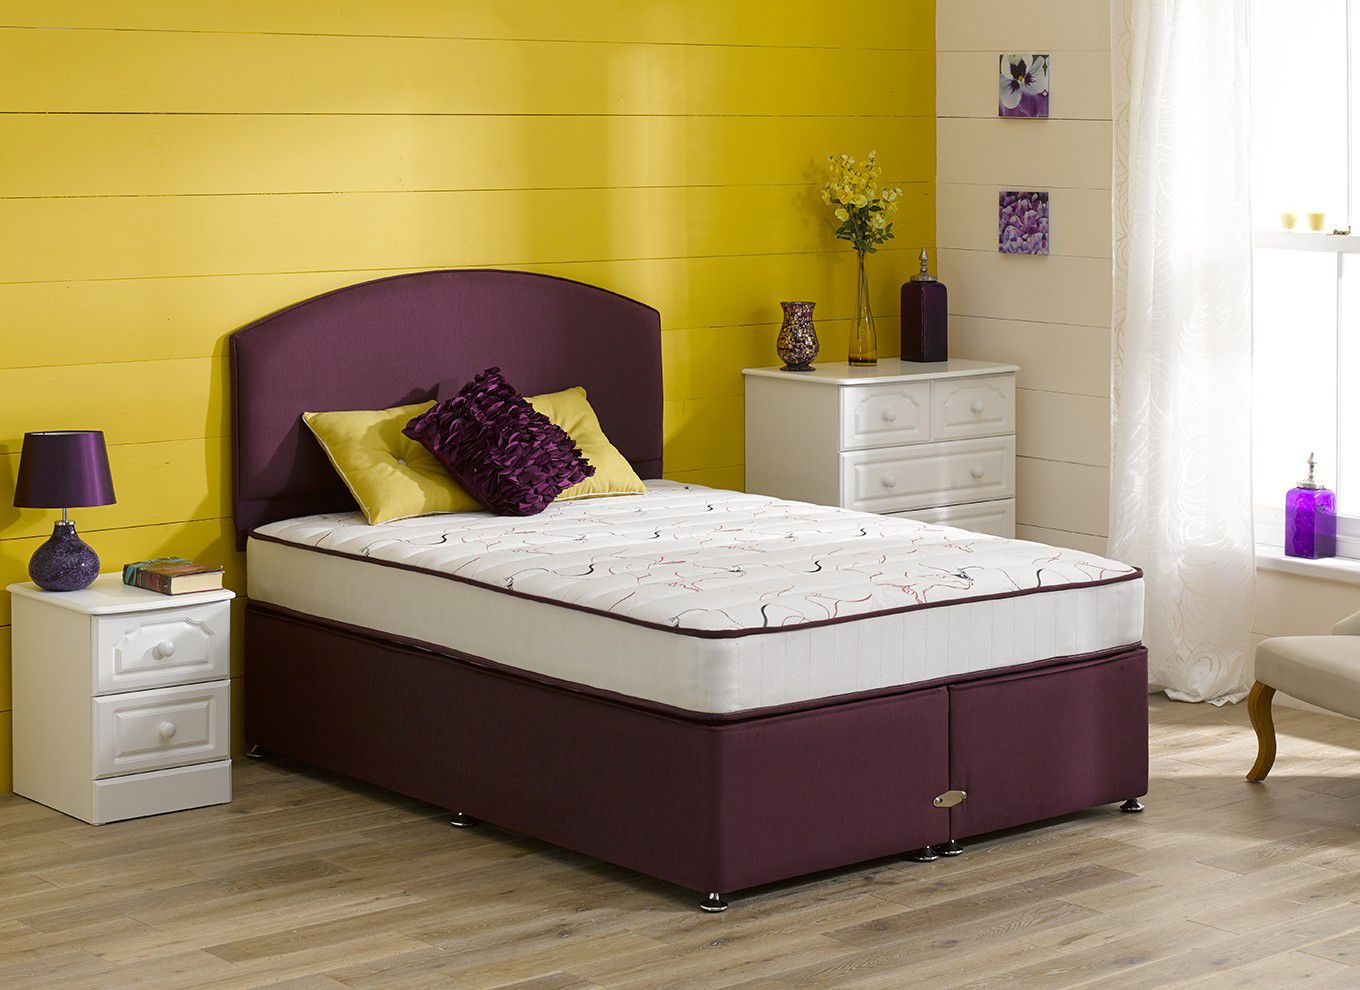 4 6 double divan beds for Double divan bed with firm mattress